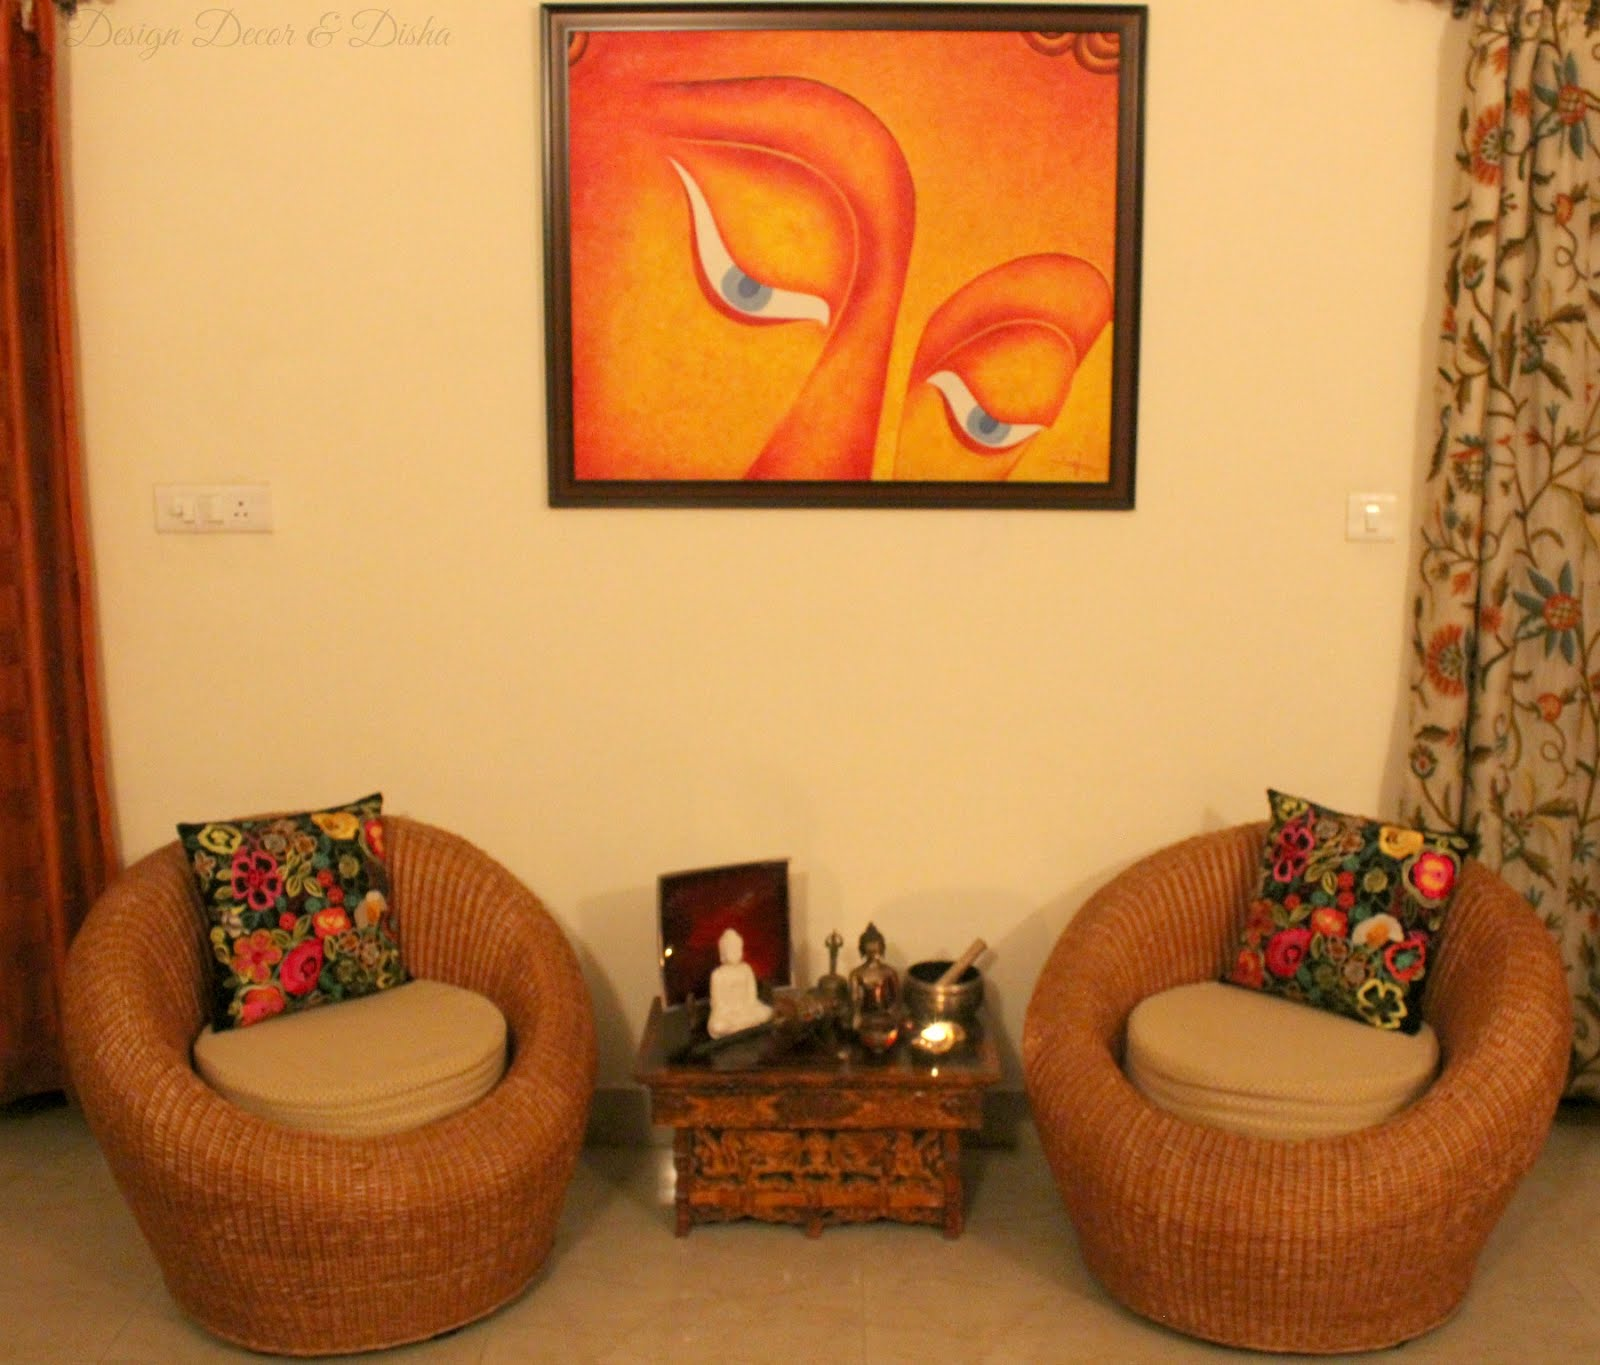 Design decor disha an indian design decor blog home for Home design ideas